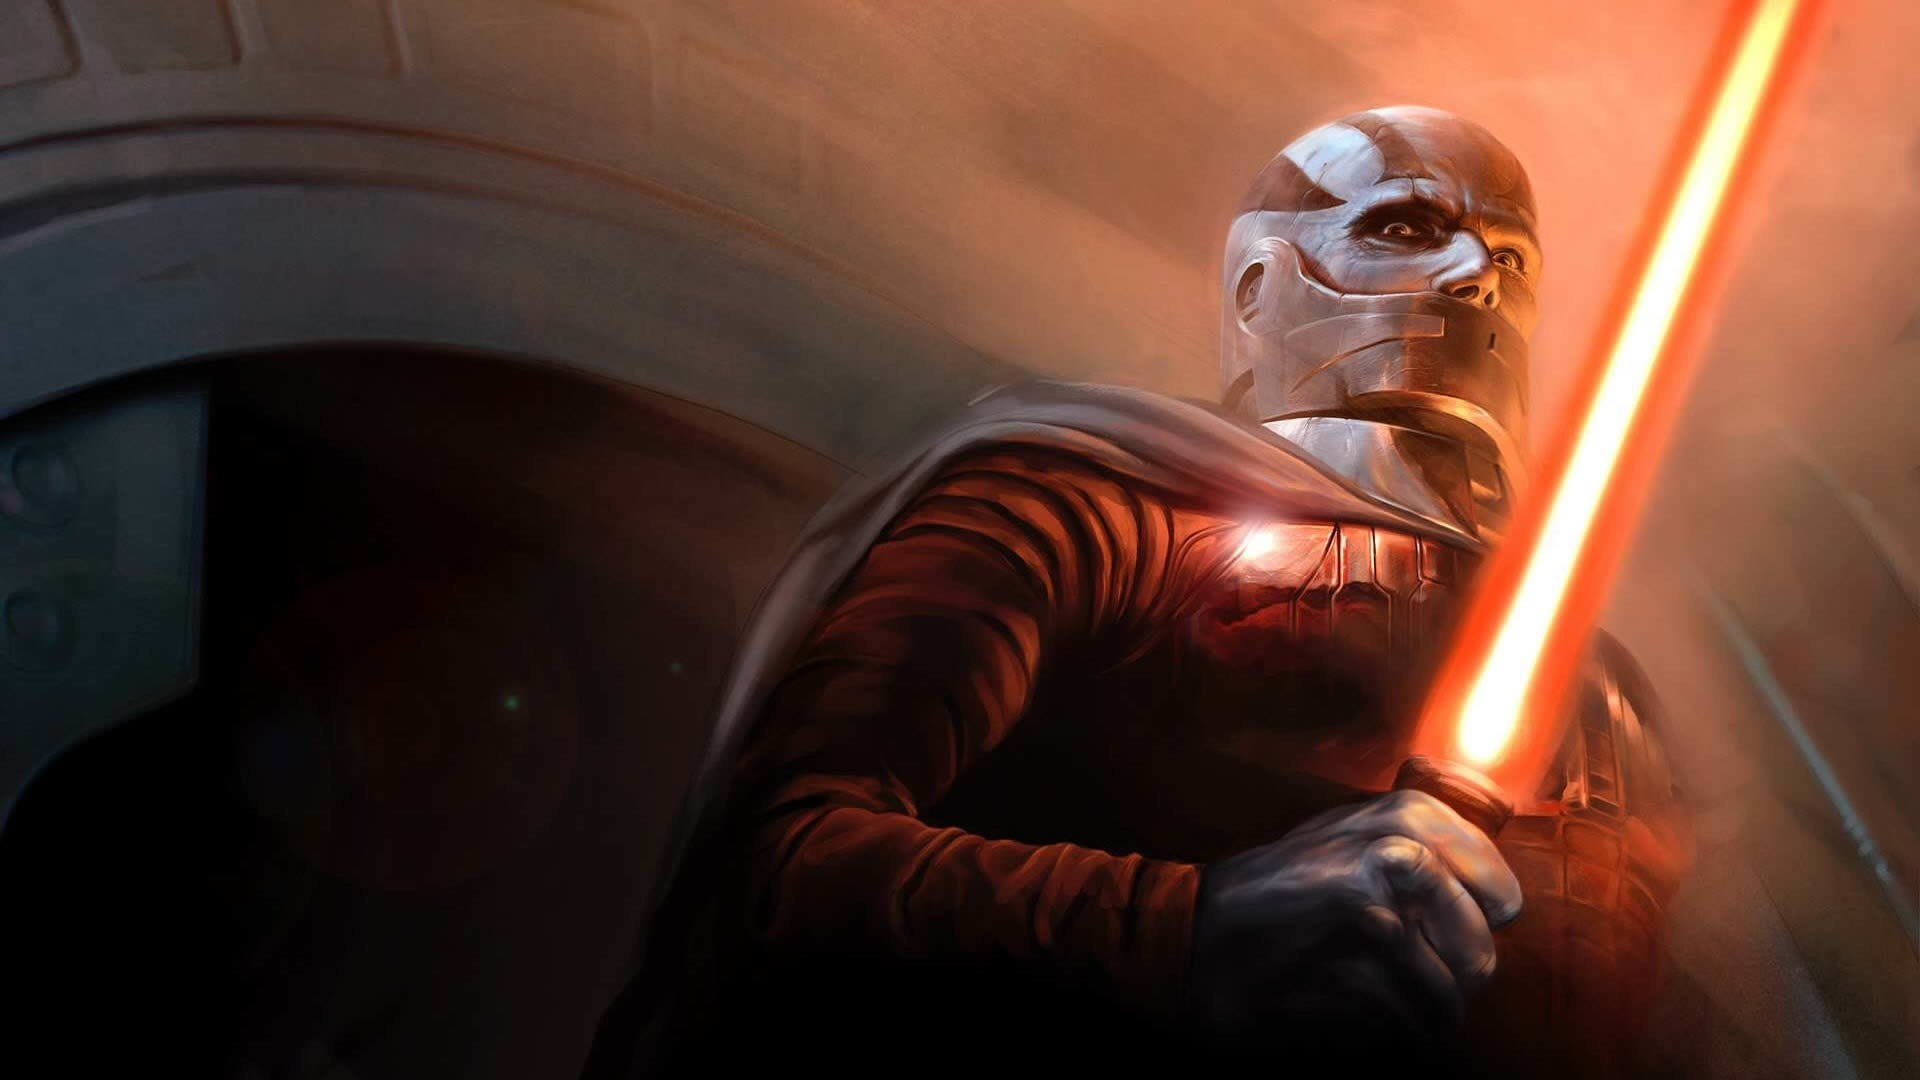 Preview wallpaper star wars the old republic, bald, character, lightsaber,  cloak 1920×1080